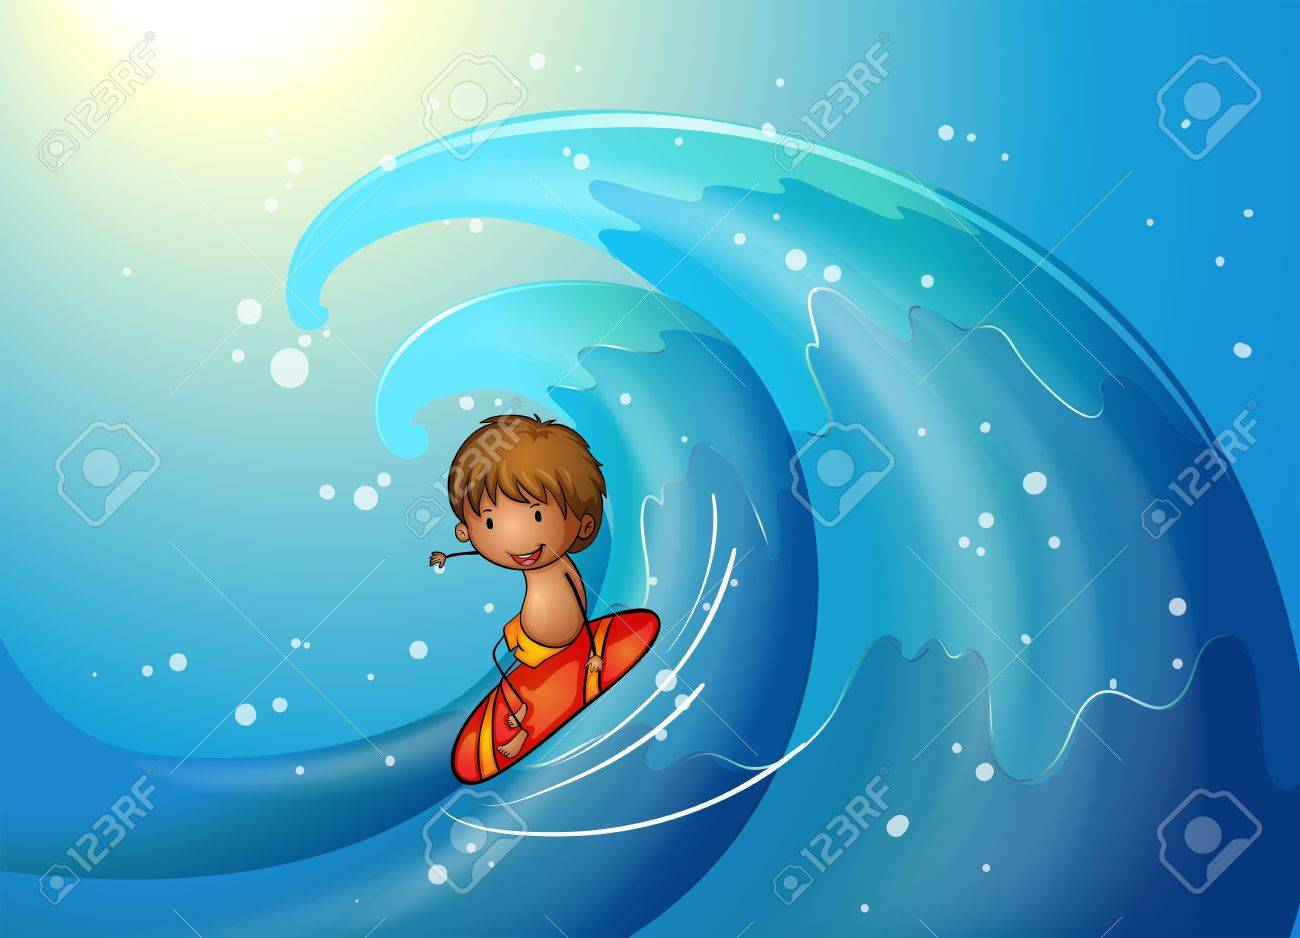 Illustration of a little man surfing Stock Vector - 20366651